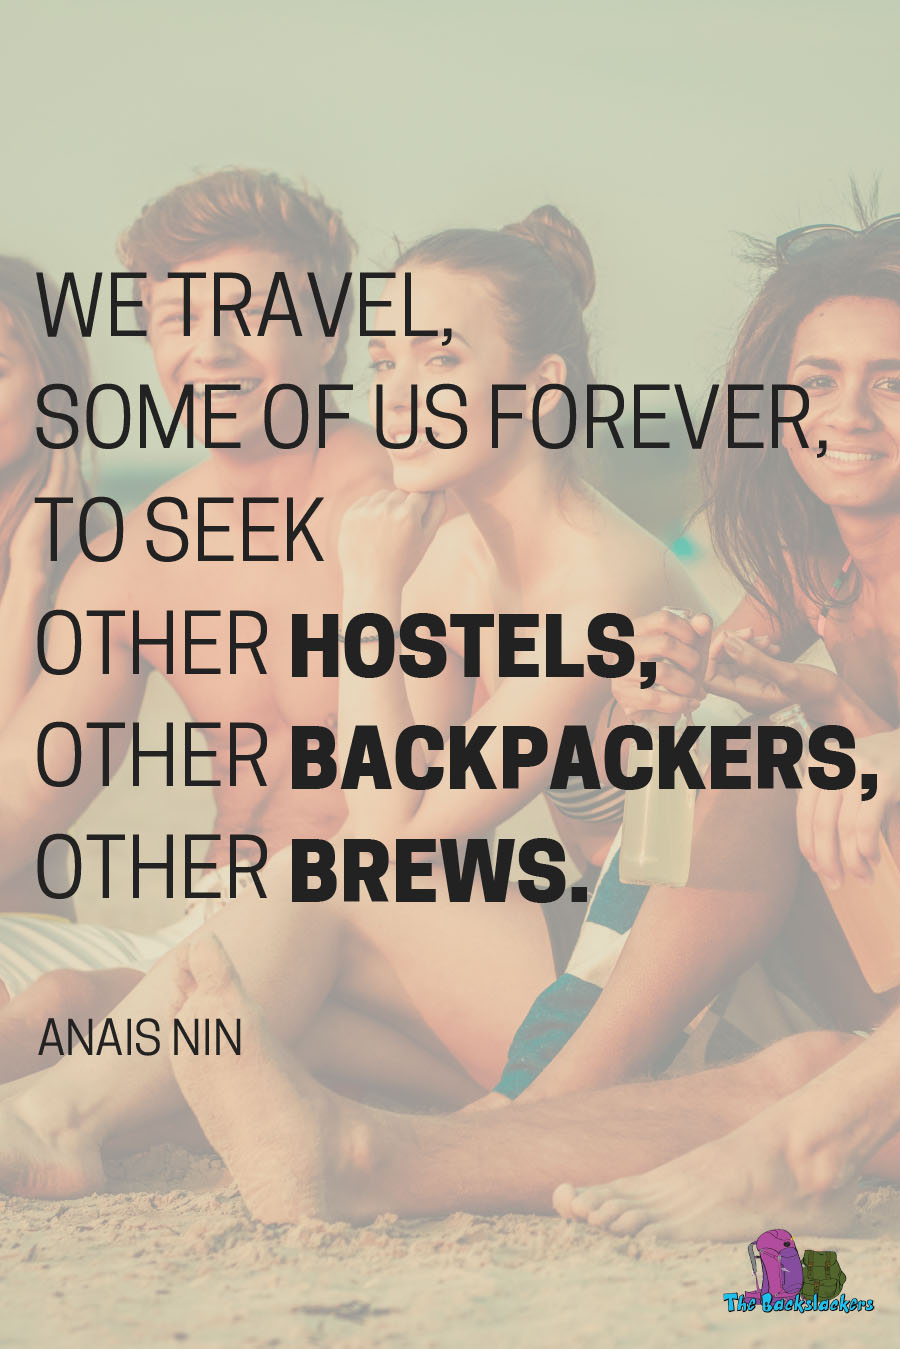 We Travel, Some Of Us Forever, To Seek Other Hostels, Other Backpackers, Other Brews. – Anais Nin | 10 Travel Quotes for Backpackers (Like You've Never Heard Them Before)